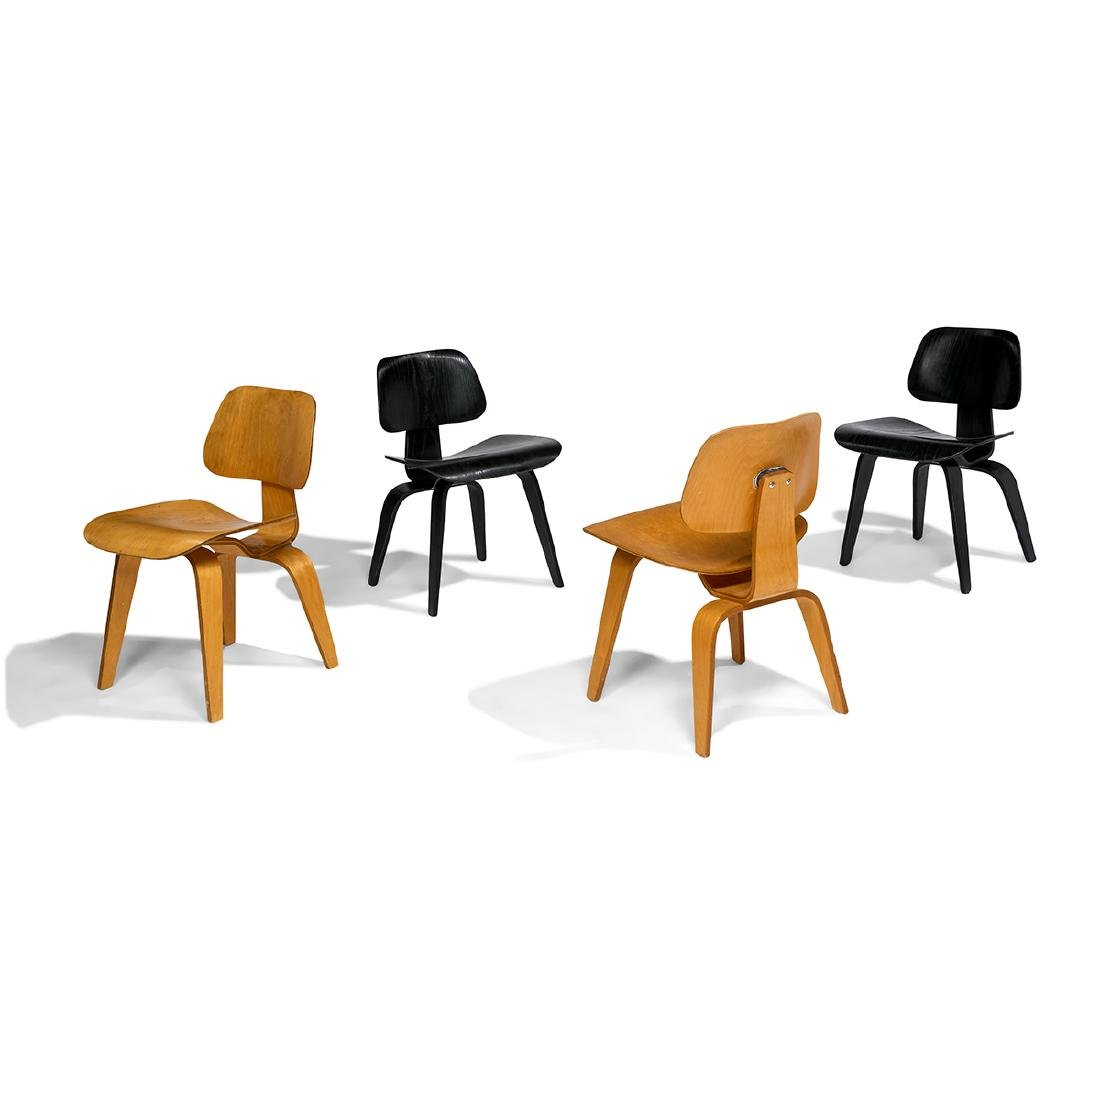 Charles & Ray Eames Herman Miller DCWs, four